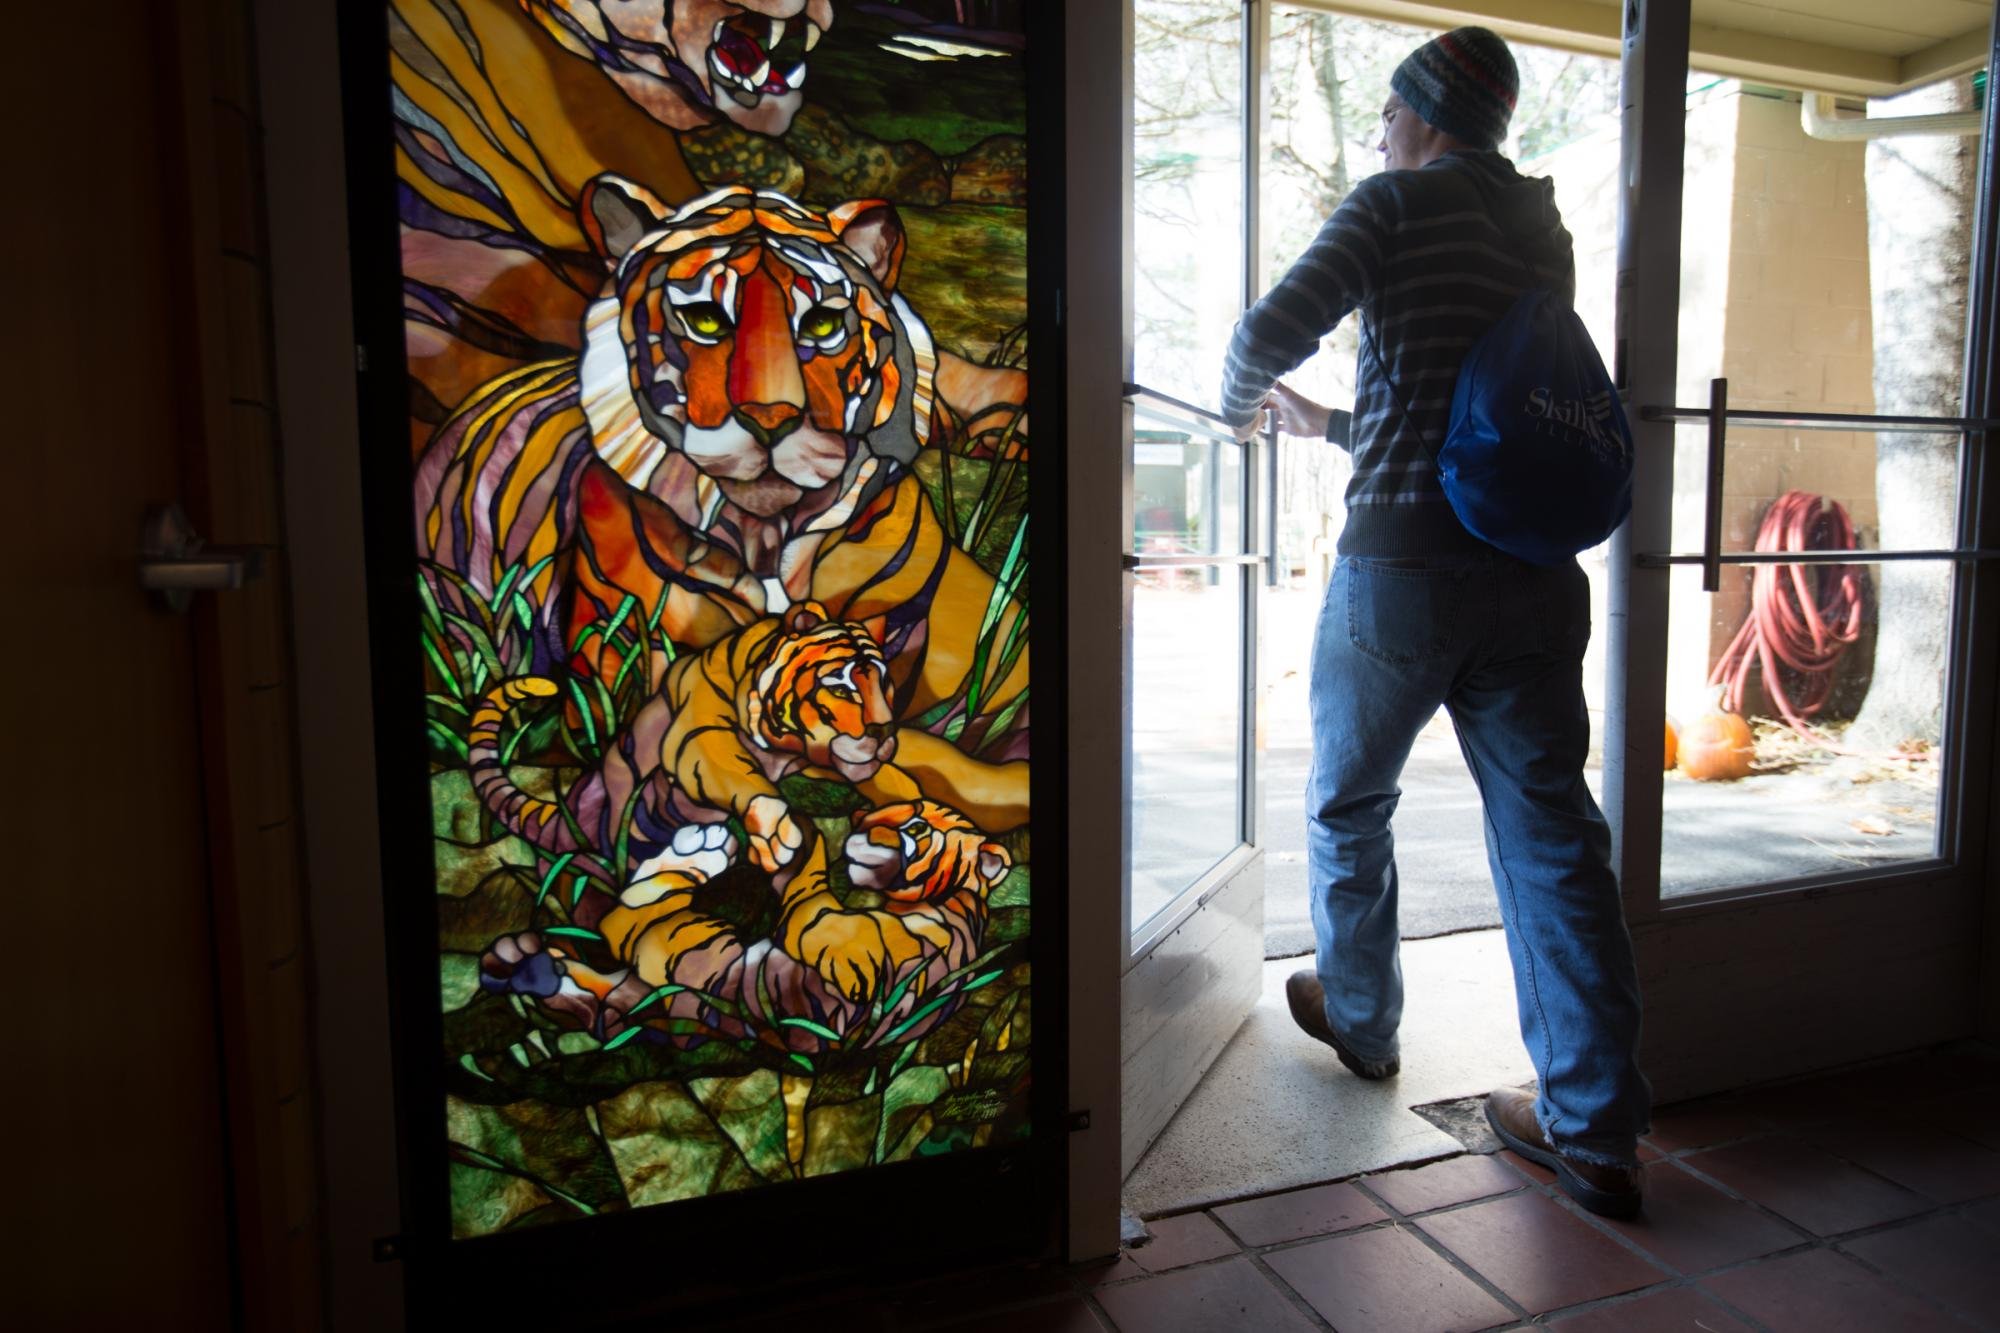 A Tigers for Tigers member attends the club's trip to the Seneca Park Zoo on Nov. 14, 2015. Photograph by Joey Ressler.